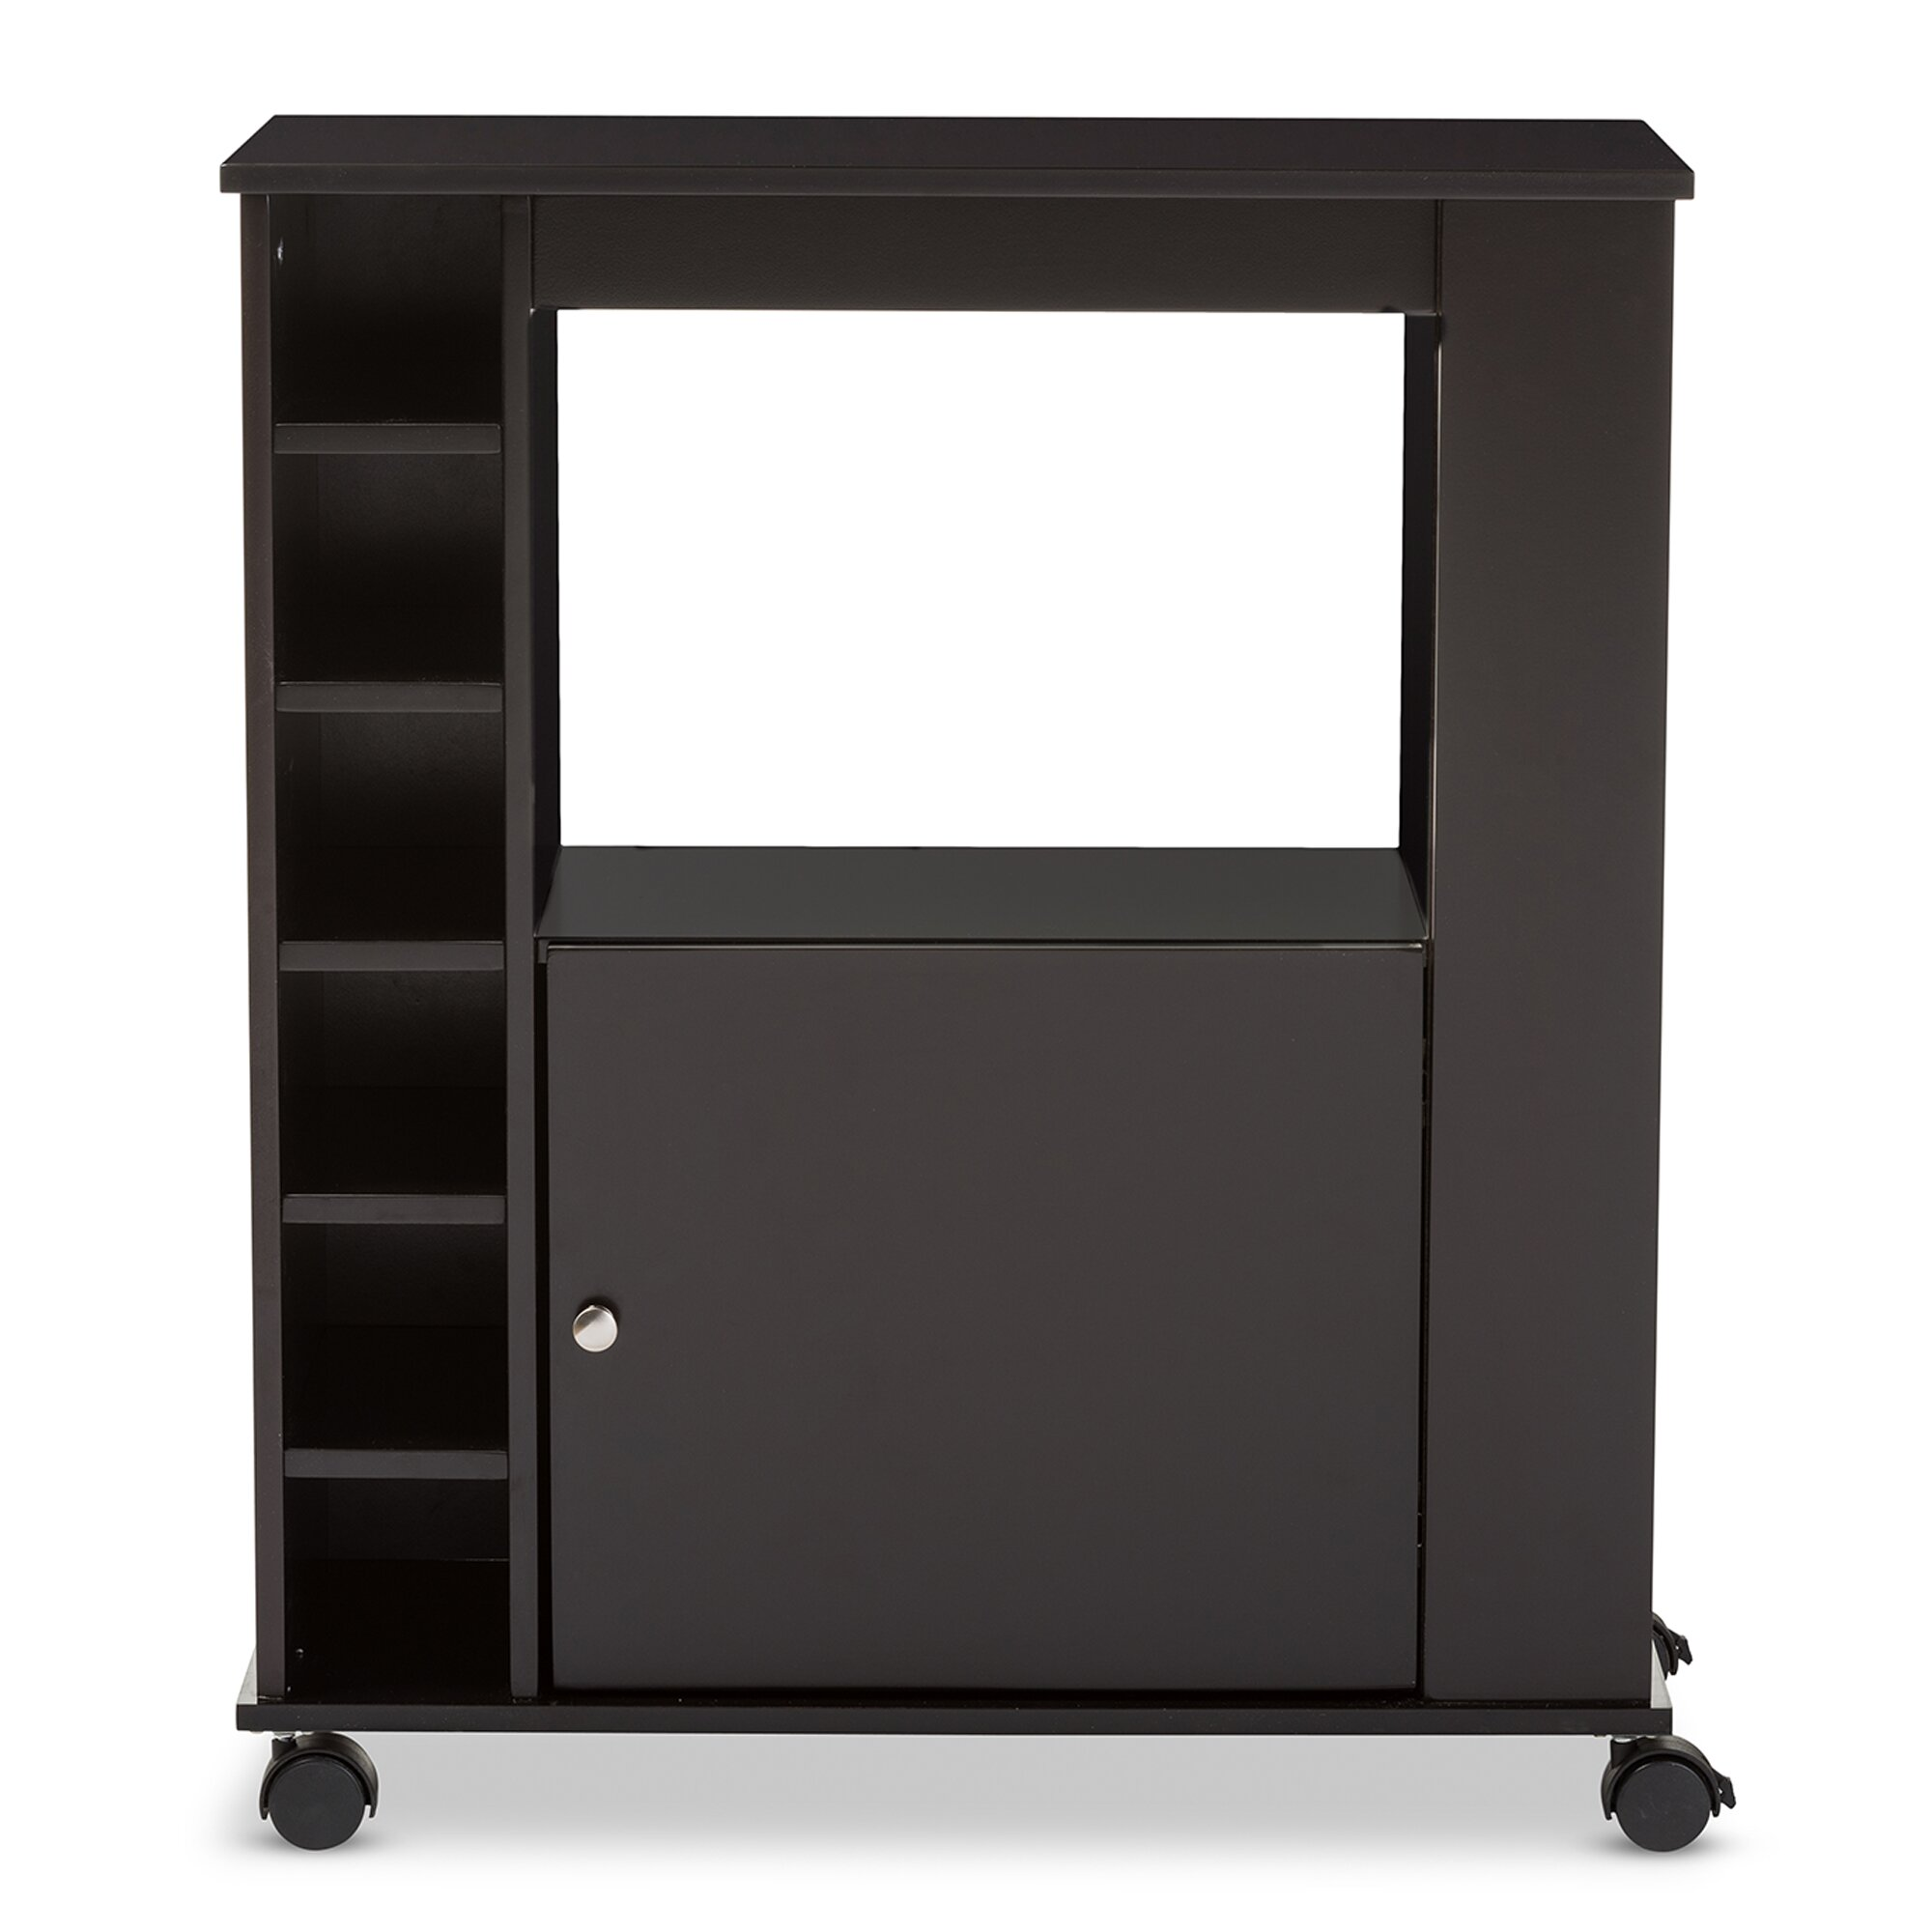 Kitchen Cupboards For Sale Ontario: Wholesale Interiors Baxton Studio Bar Cabinet & Reviews